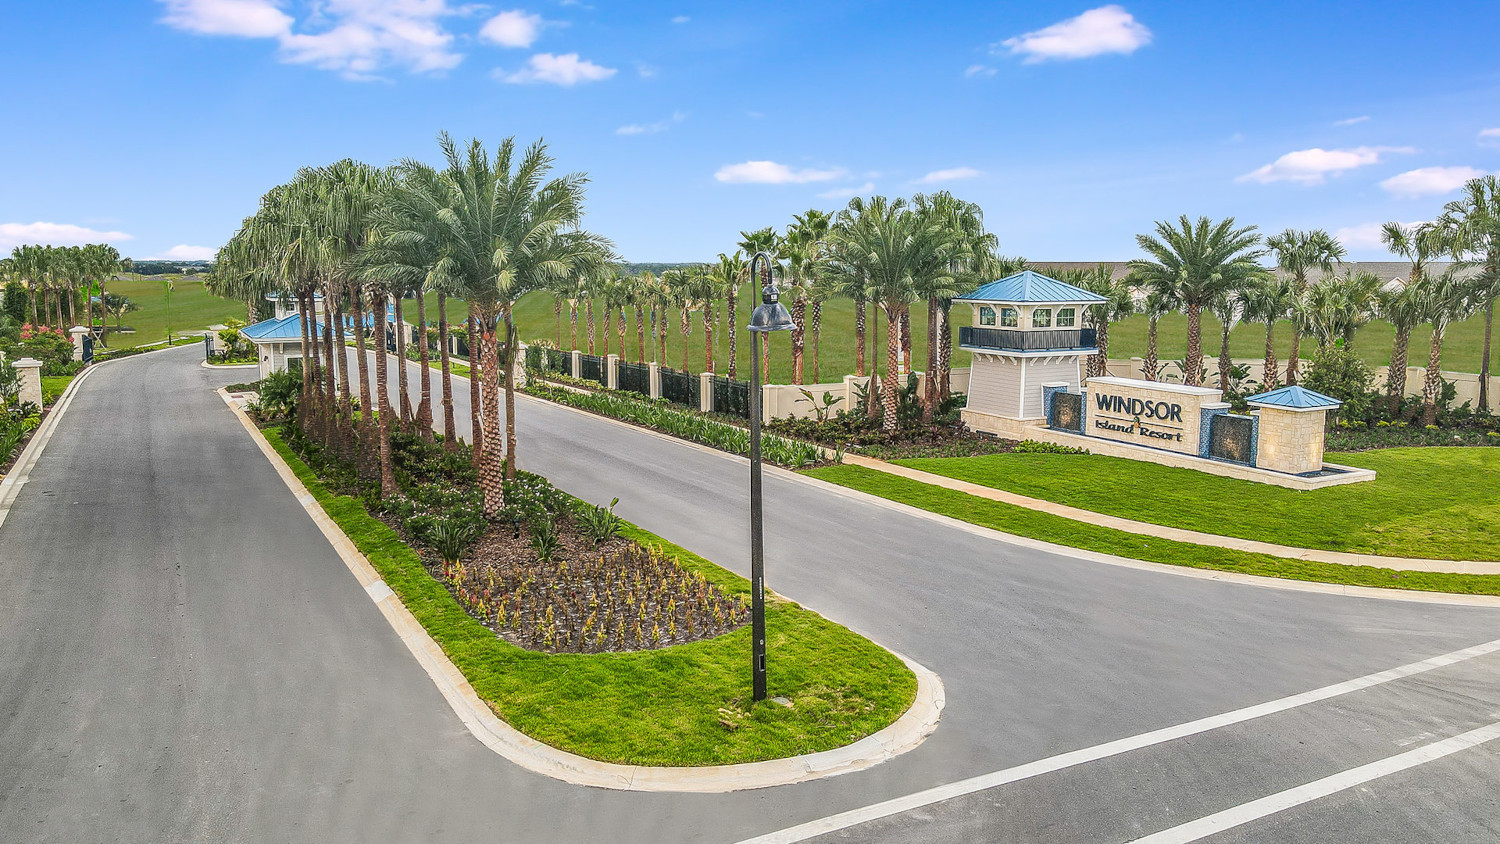 Windsor Island Resort - Kissimmee